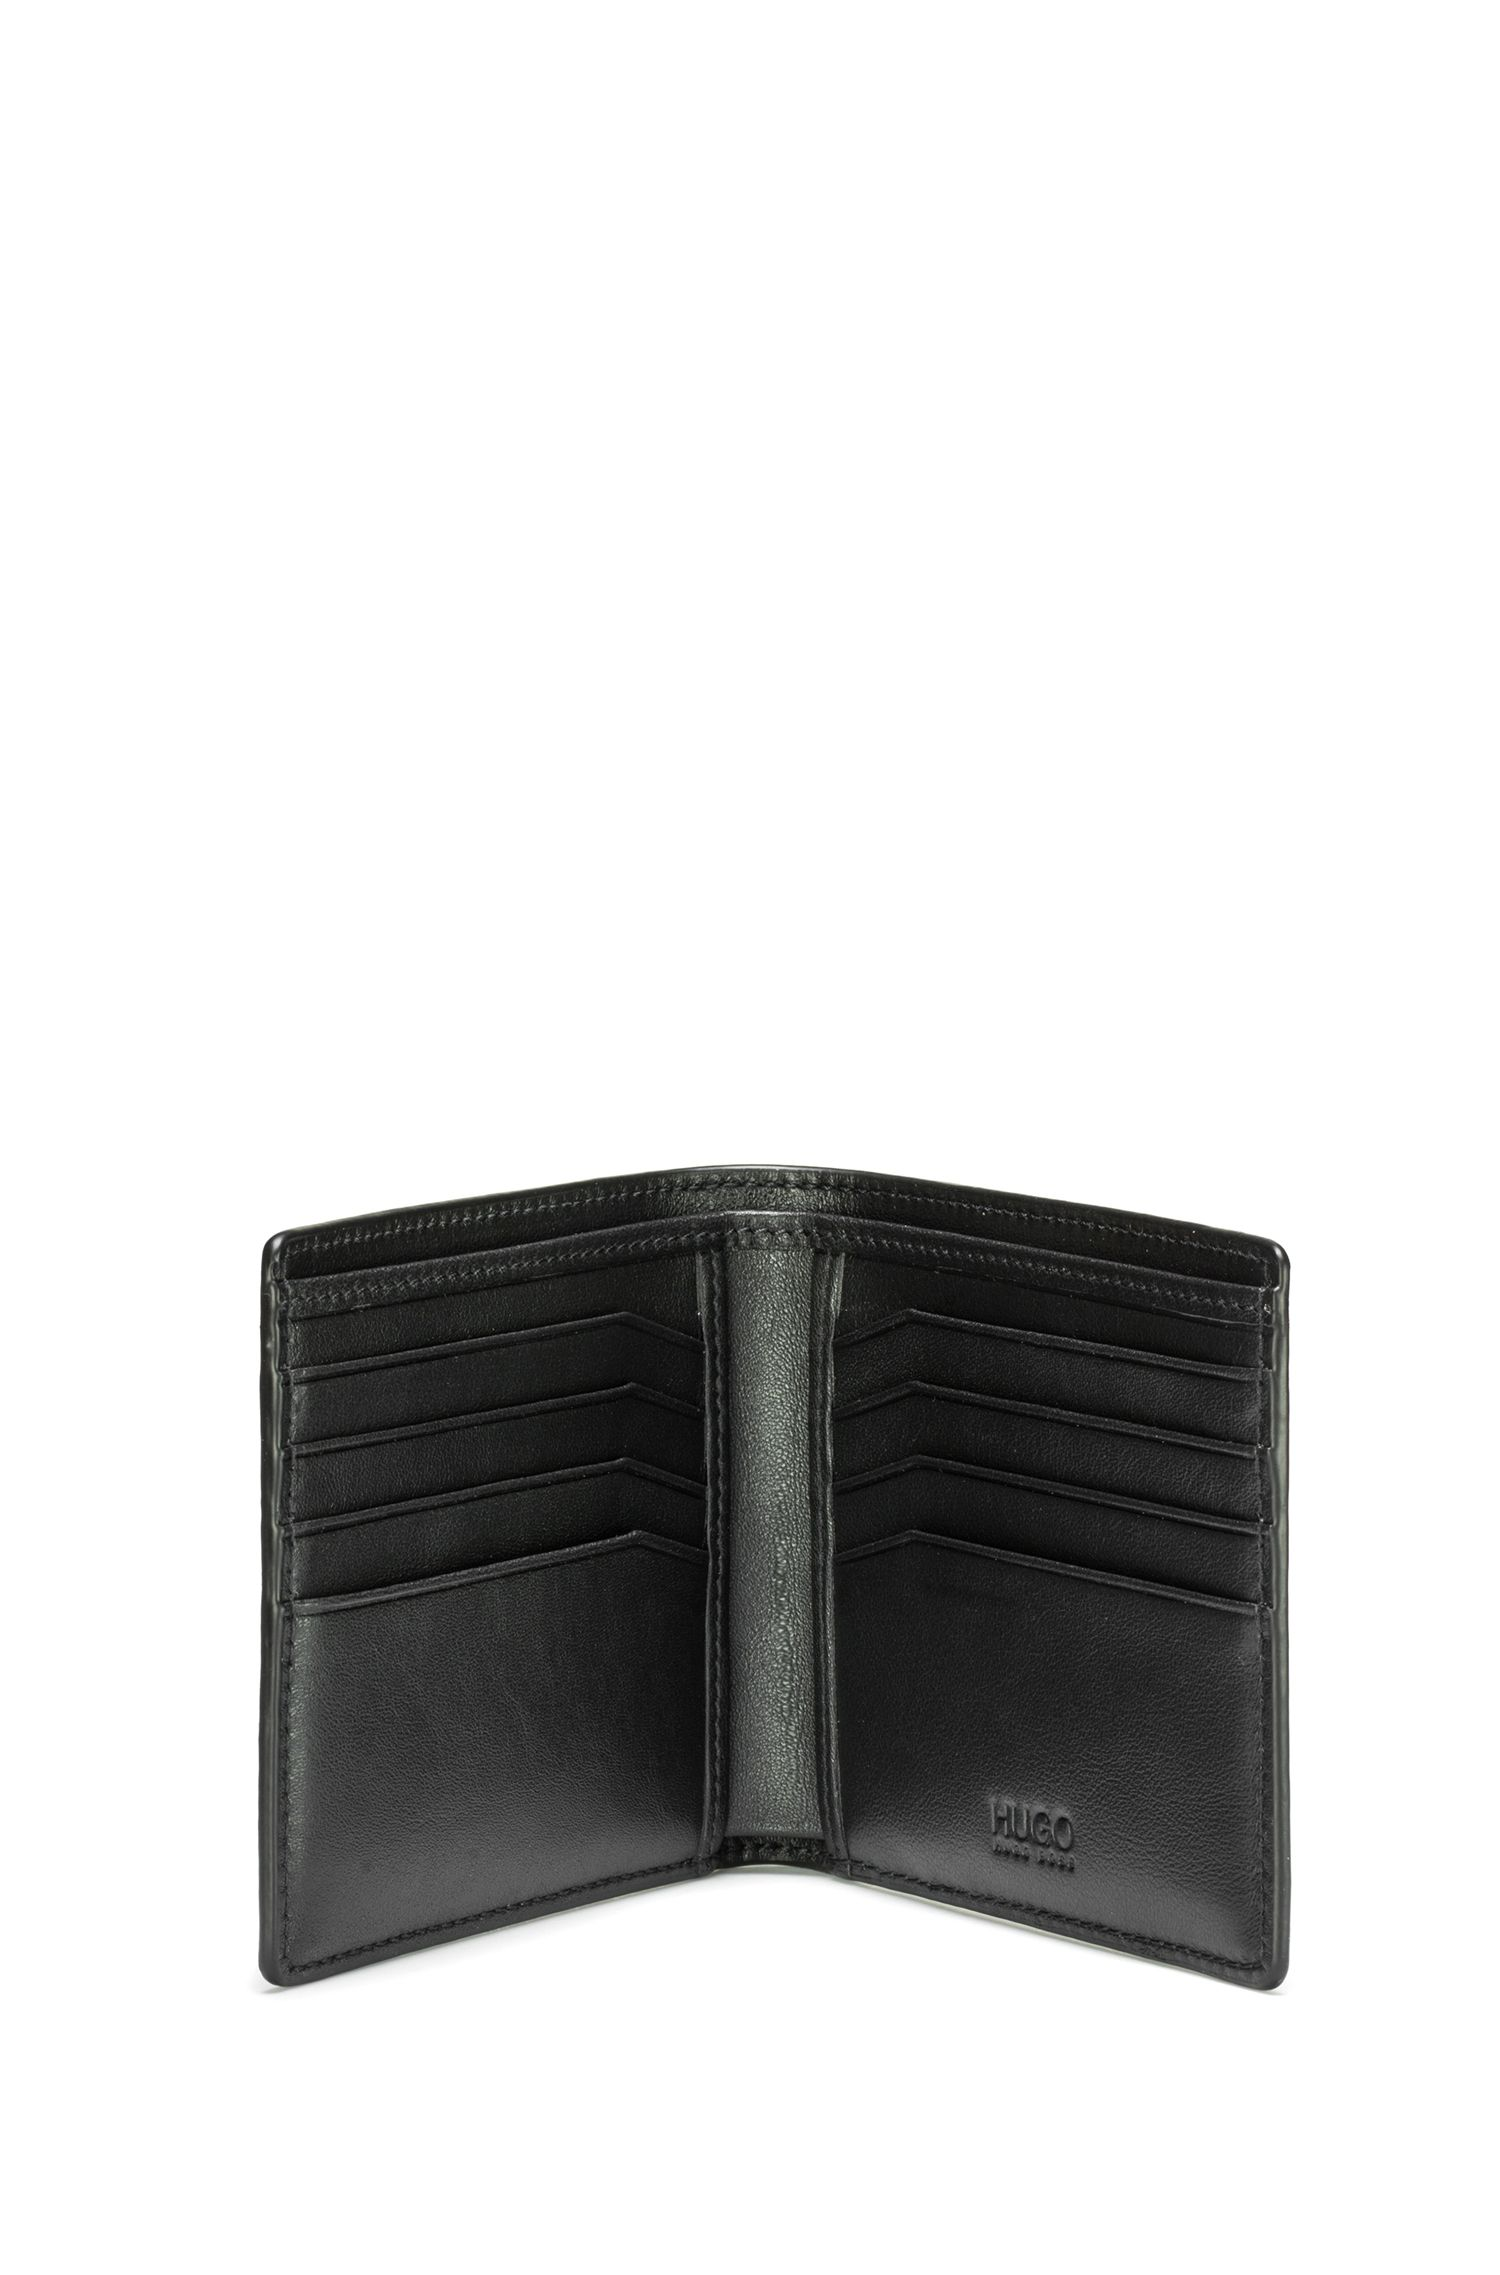 Reverse-logo wallet in leather, Black